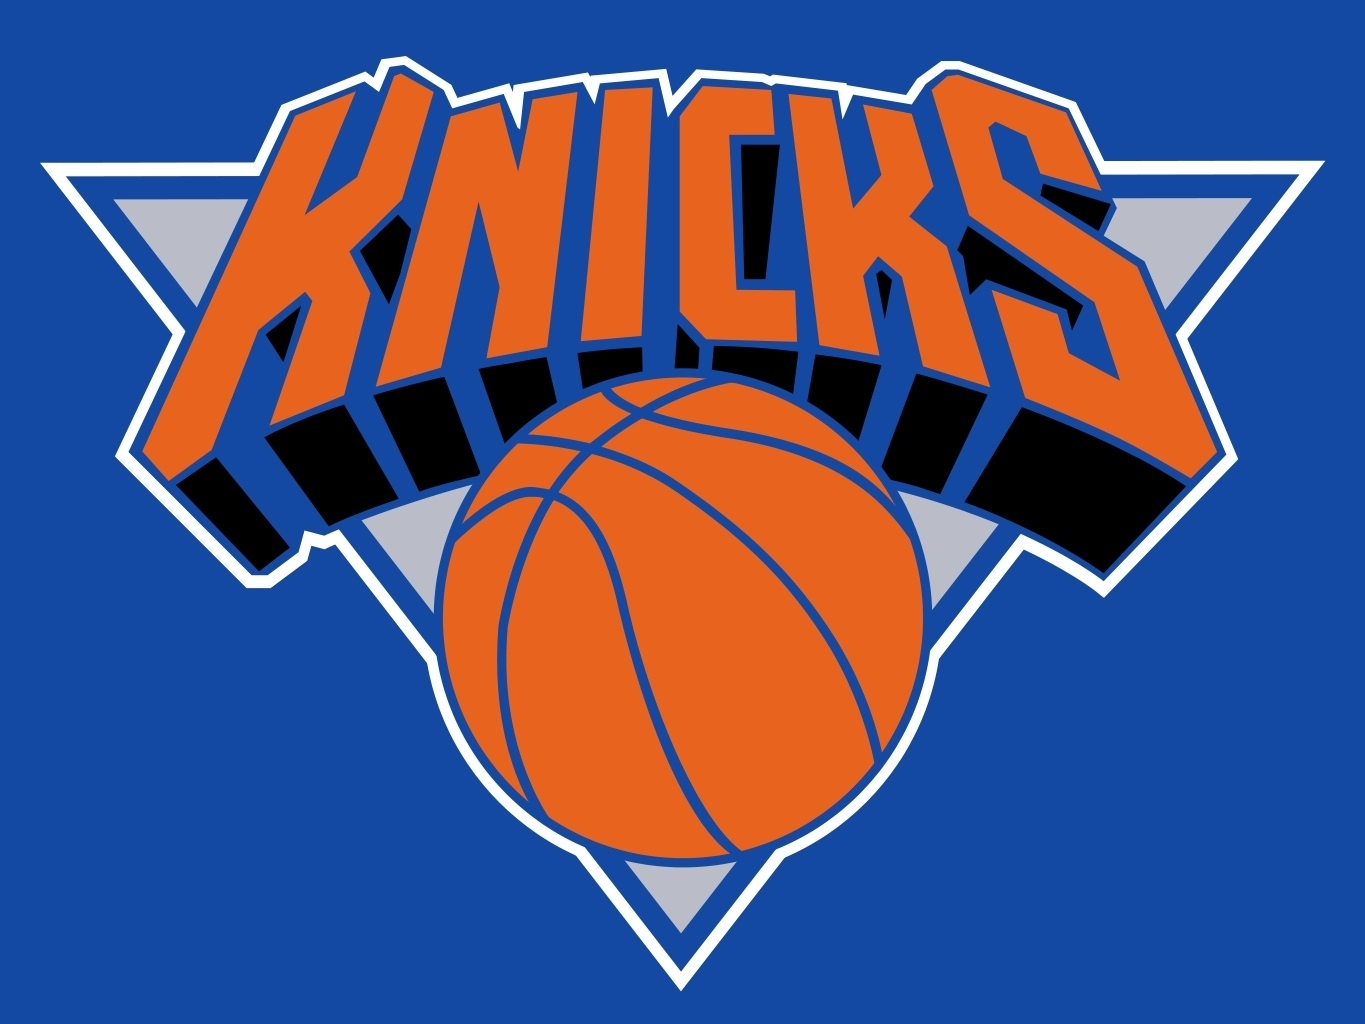 New York Knicks Wallpaper and Background Image | 1365x1024 ...